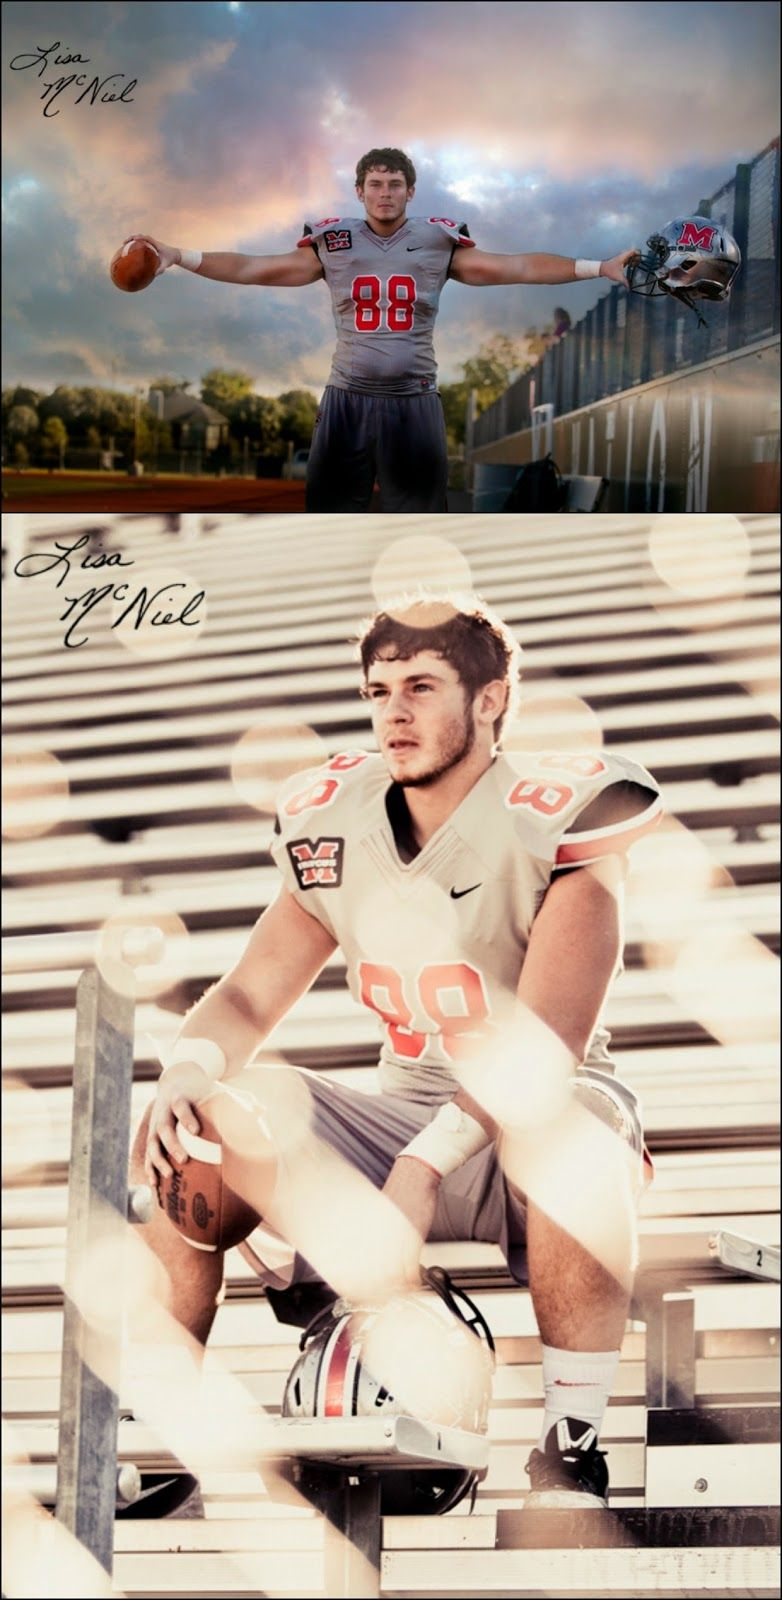 Flower Mound Marcus Senior Pictures of Football player by